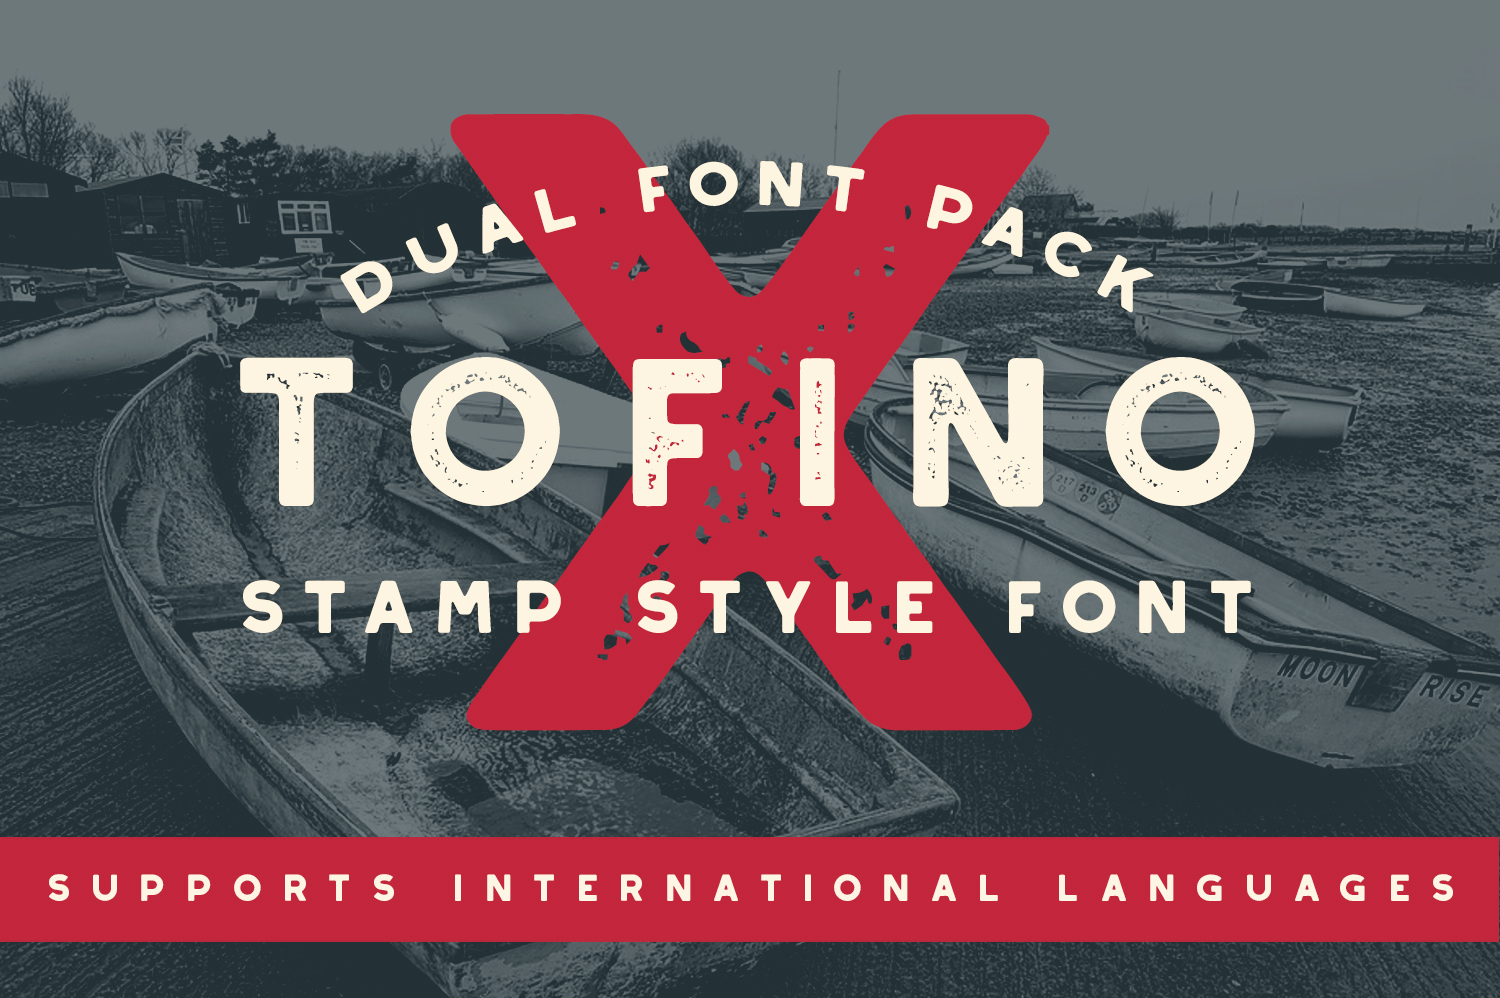 Tofino Stamp Font - Available on Creative Market